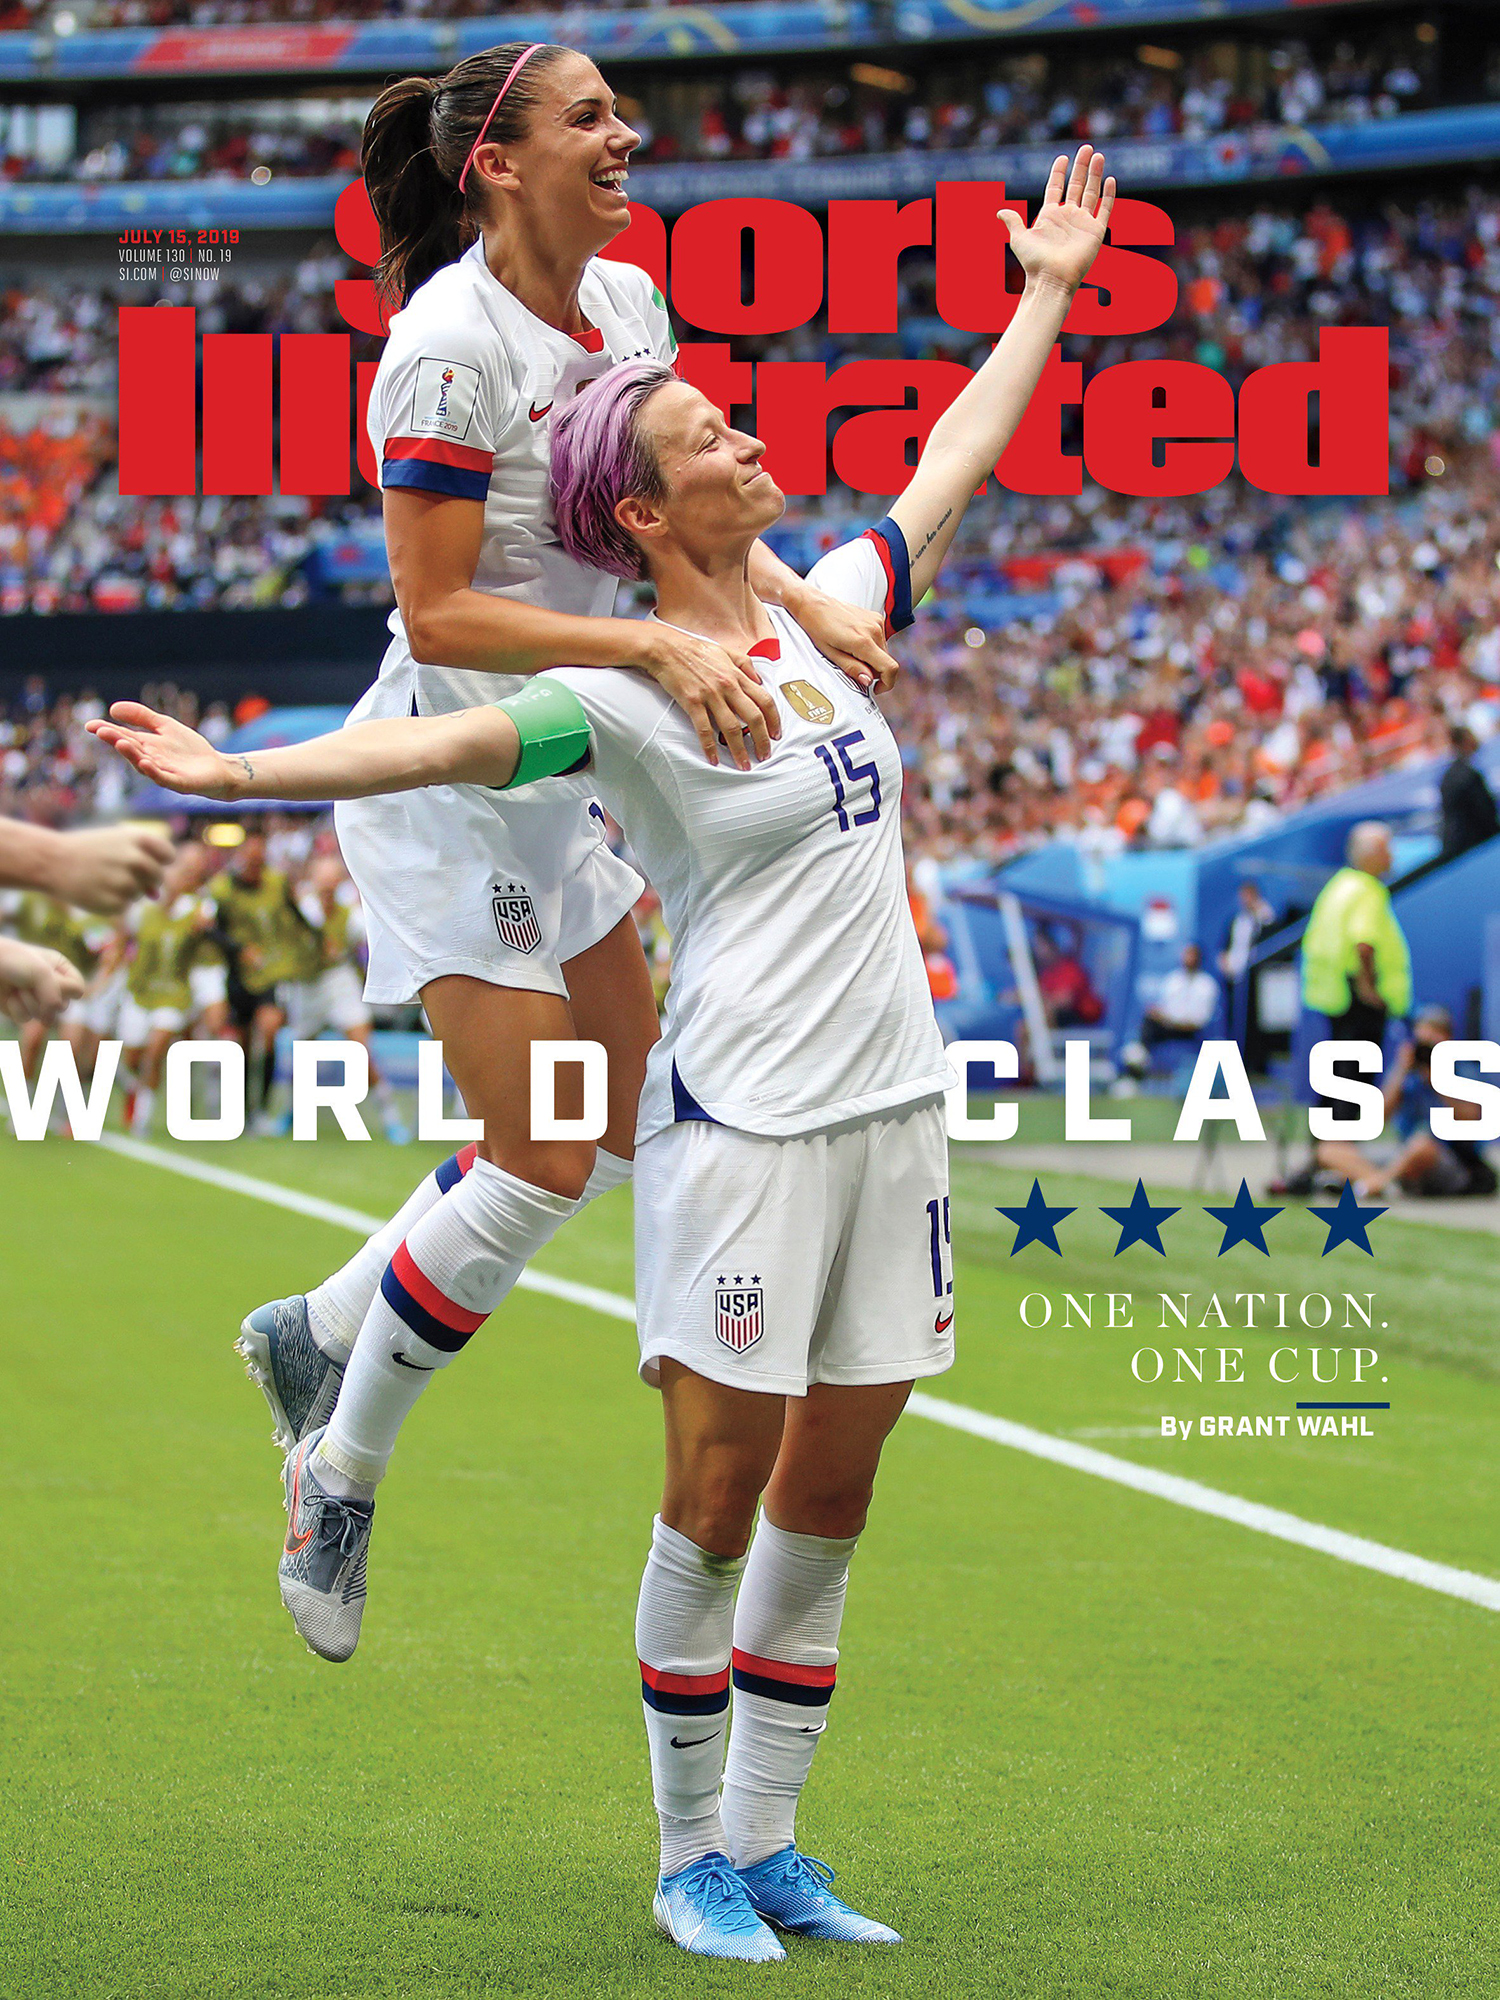 Magazine Cover - Title in red lettering behind a photograph of two ecstatic soccer athletes celebrating a win.